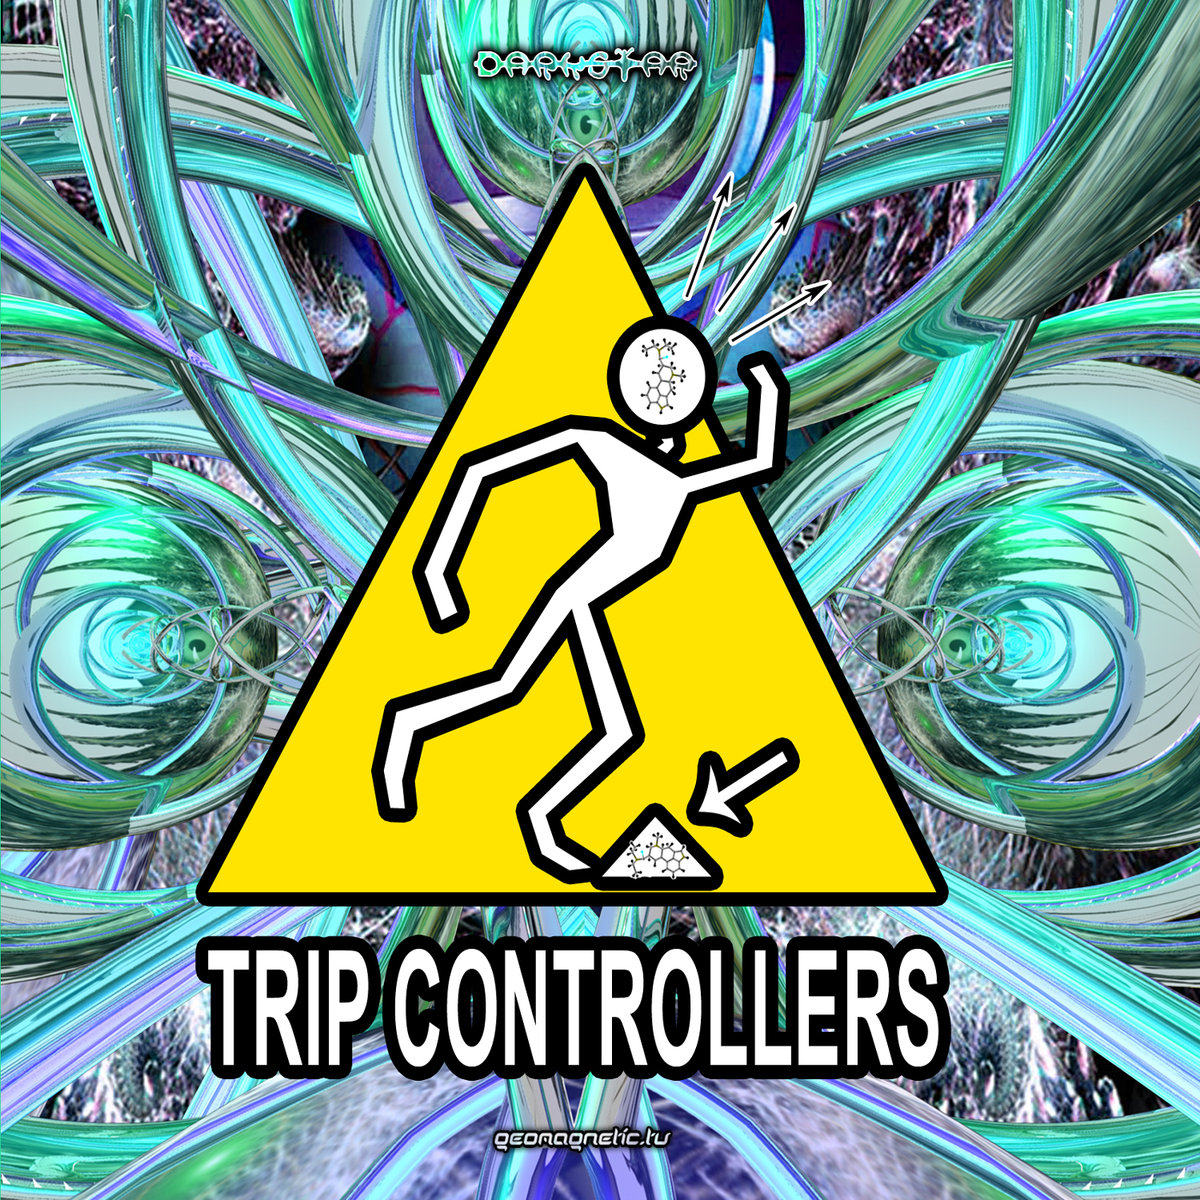 Distorted Goblin - Synchronisation @ 'Various Artists - Trip Controllers (Compiled by Dr. Spook)' album (electronic, goa)